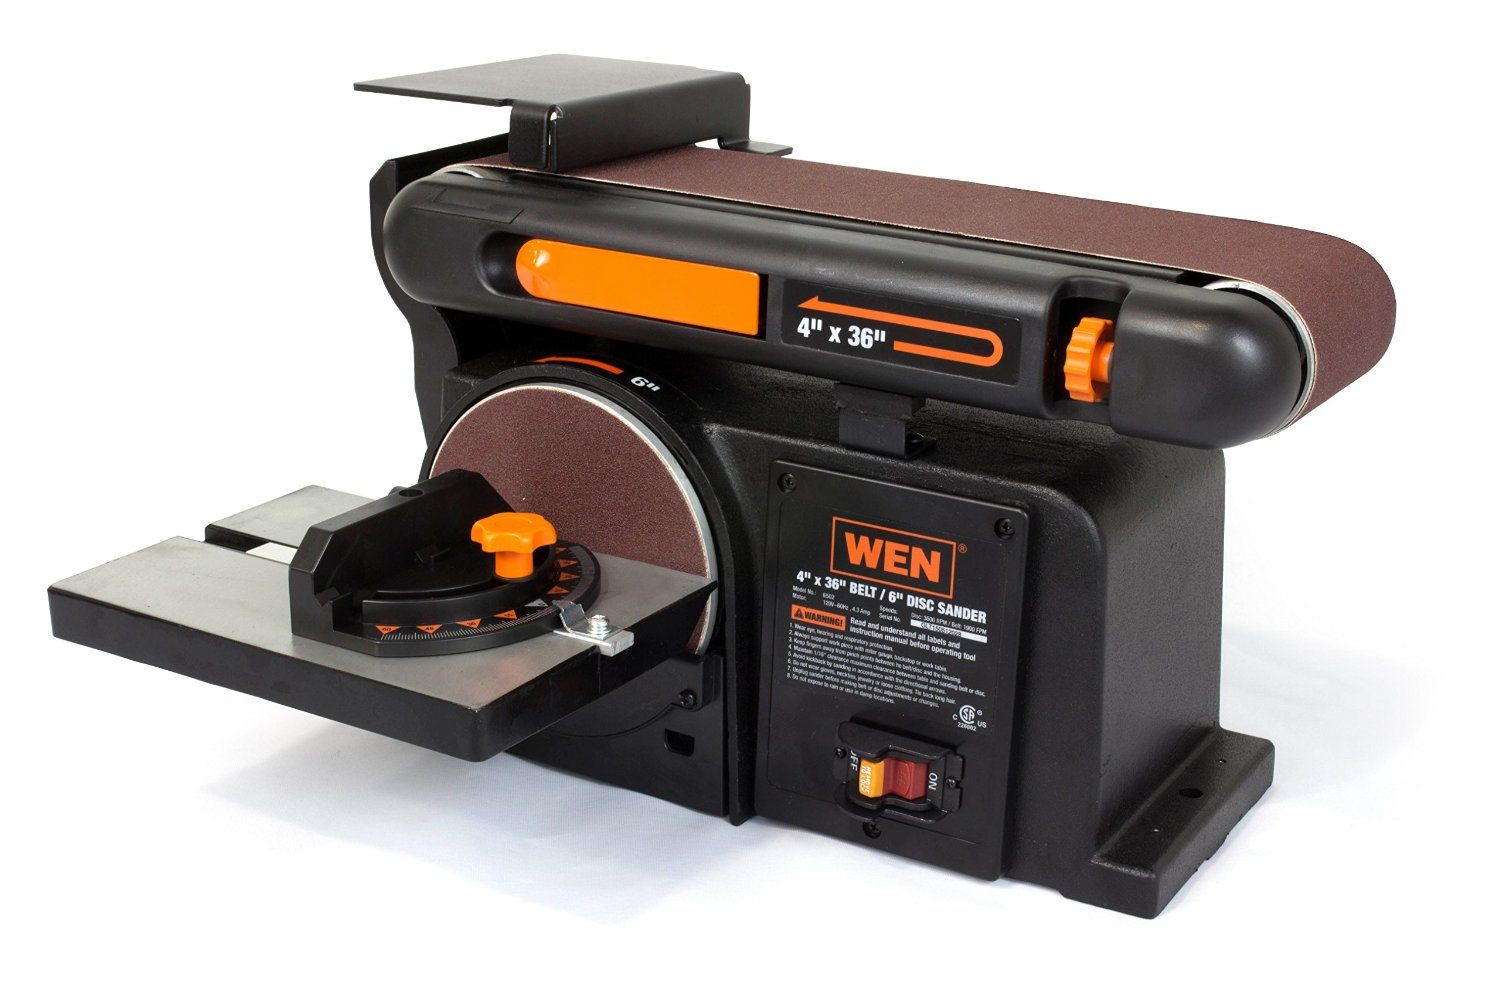 Wen 6502t 4 3 Amp 4 X 36 In Belt And 6 In Disc Sander With Cast Iron Base You Can Get More Details By Clicking On The Image Belt Sander Sanders Cast Iron